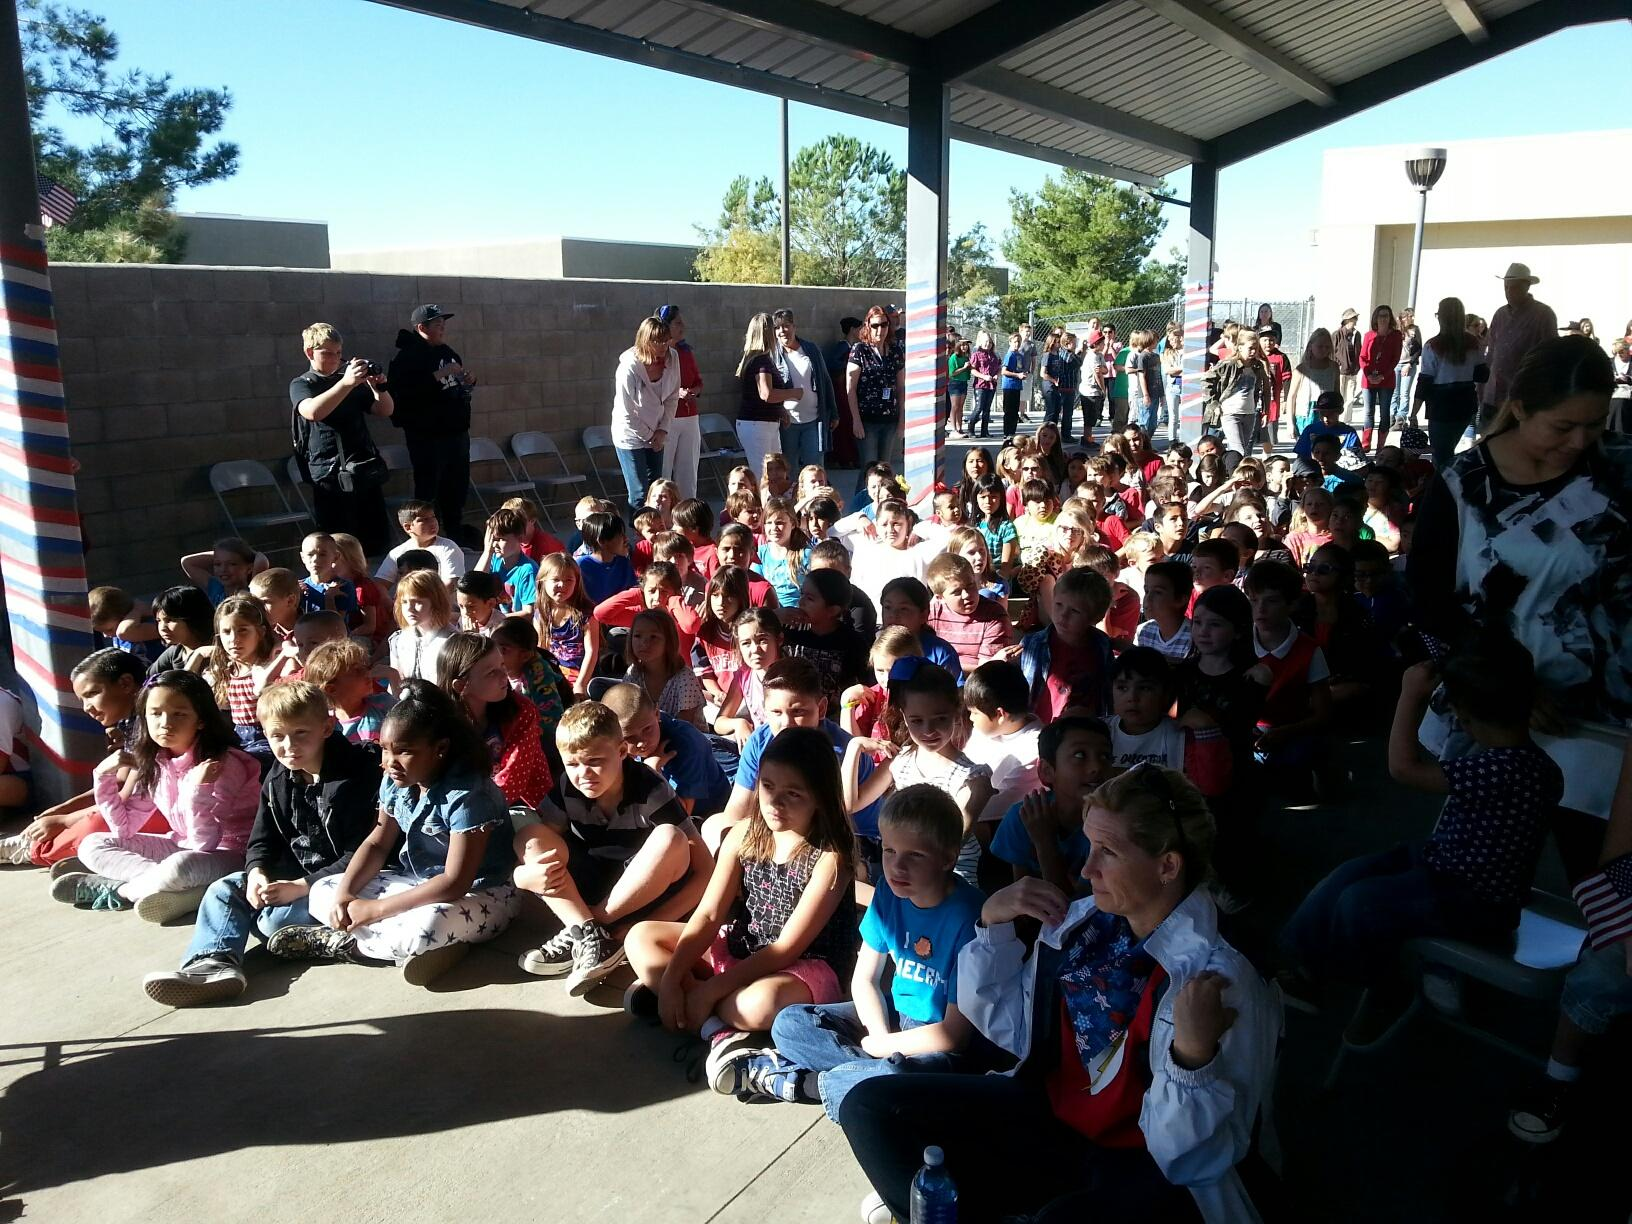 Elementary students and staff watching the performance